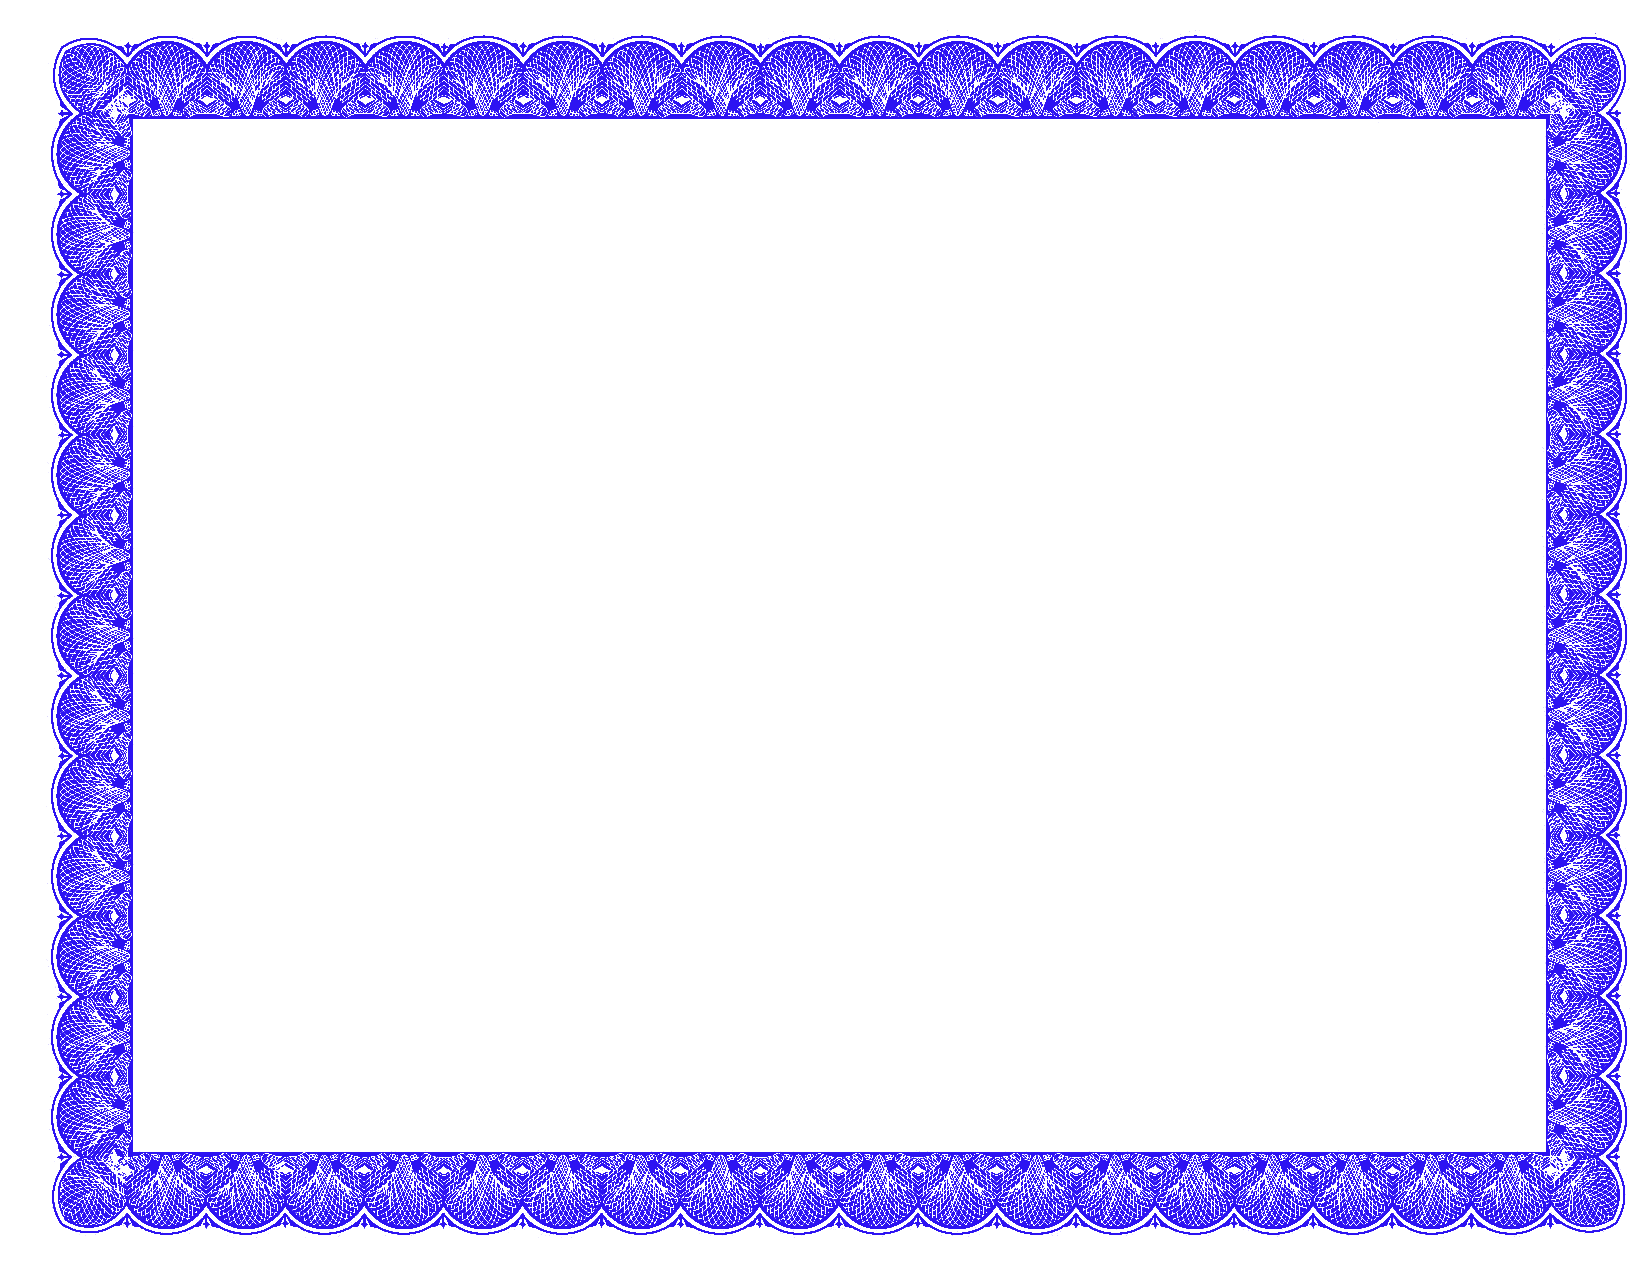 Photoshop borders png. California birth certificate template